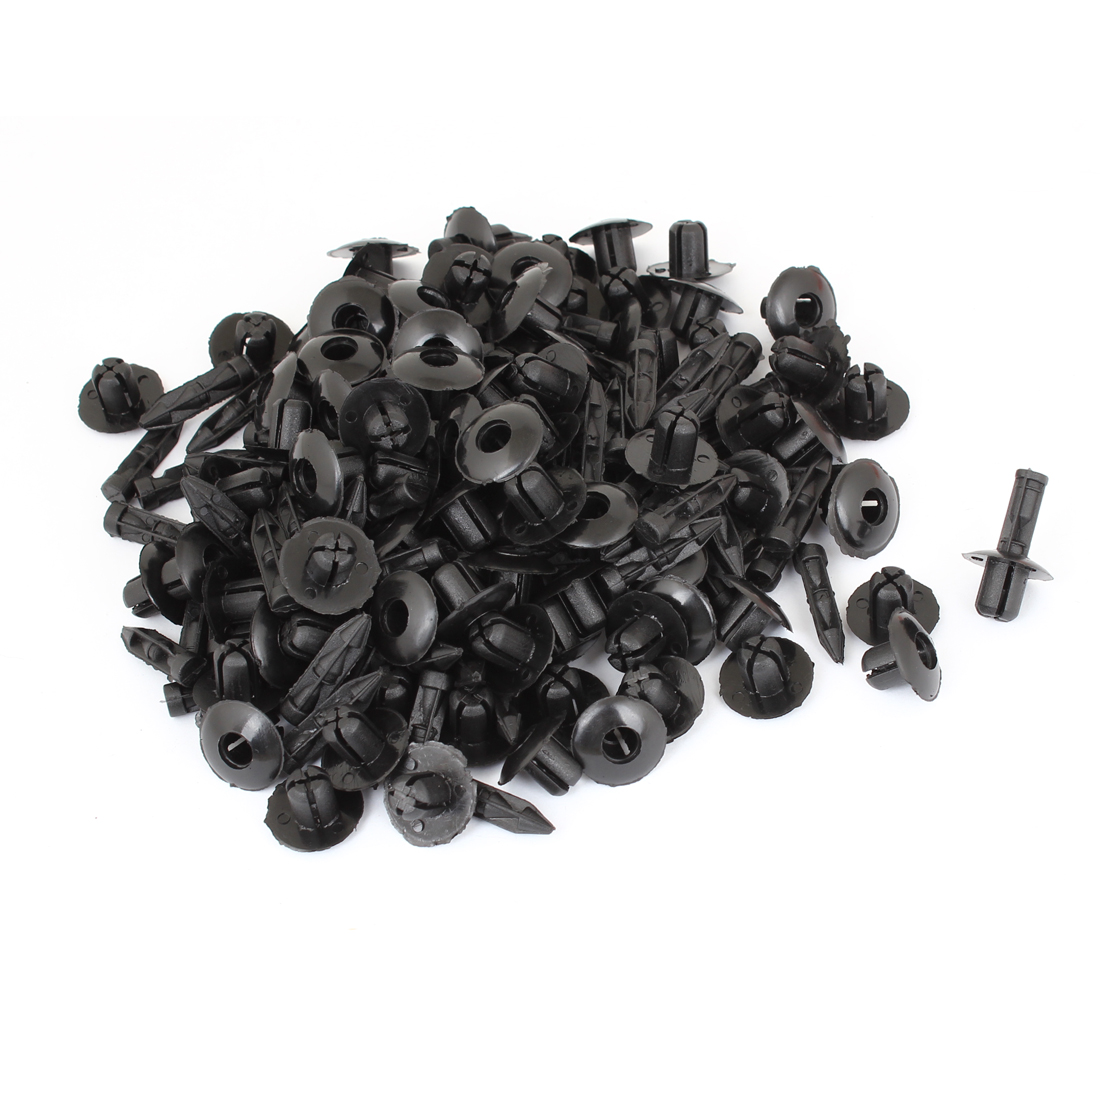 "100 Pcs Vehicle 0.28"" Hole Black Door Plastic Replacement Rivets Fastener"